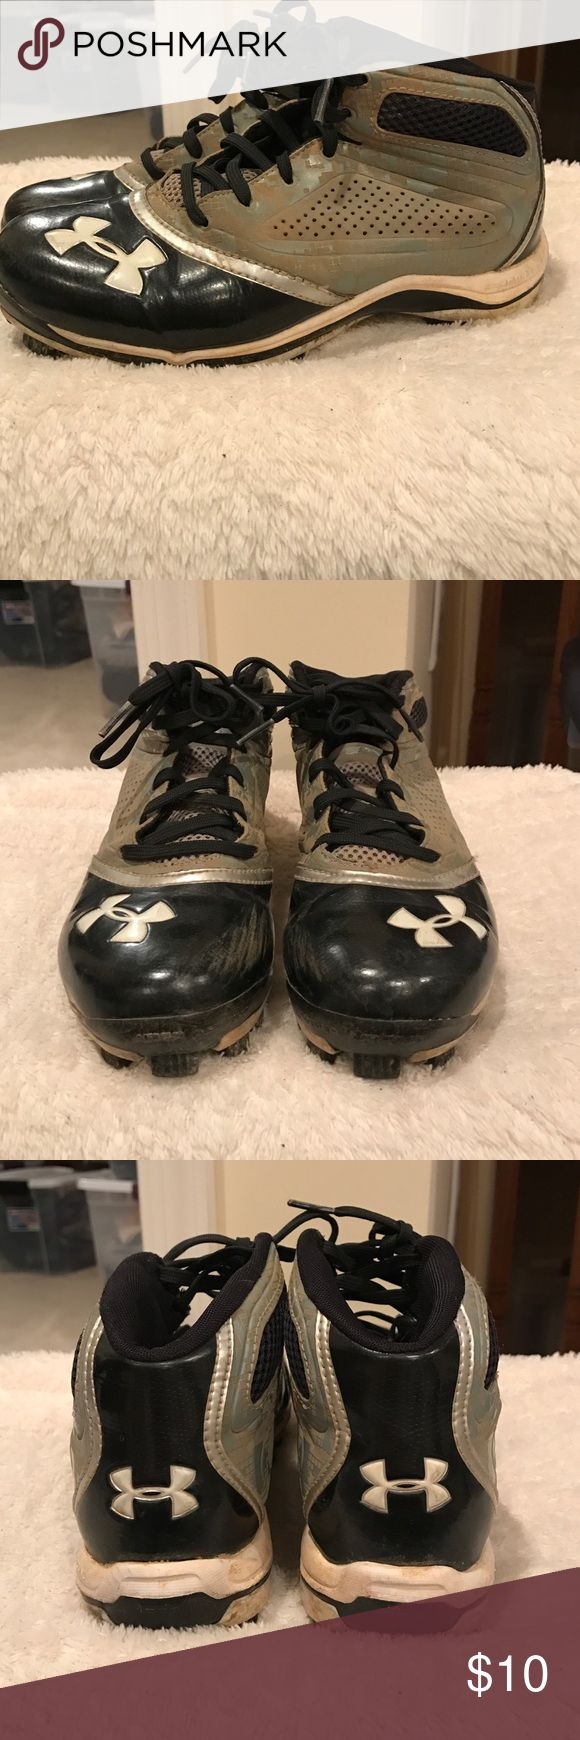 Under Armour kids cleats. 🌸 Fair condition. Obvious wear and tear. Muddy in areas, but can come out in wash. Under Armour Shoes Sneakers